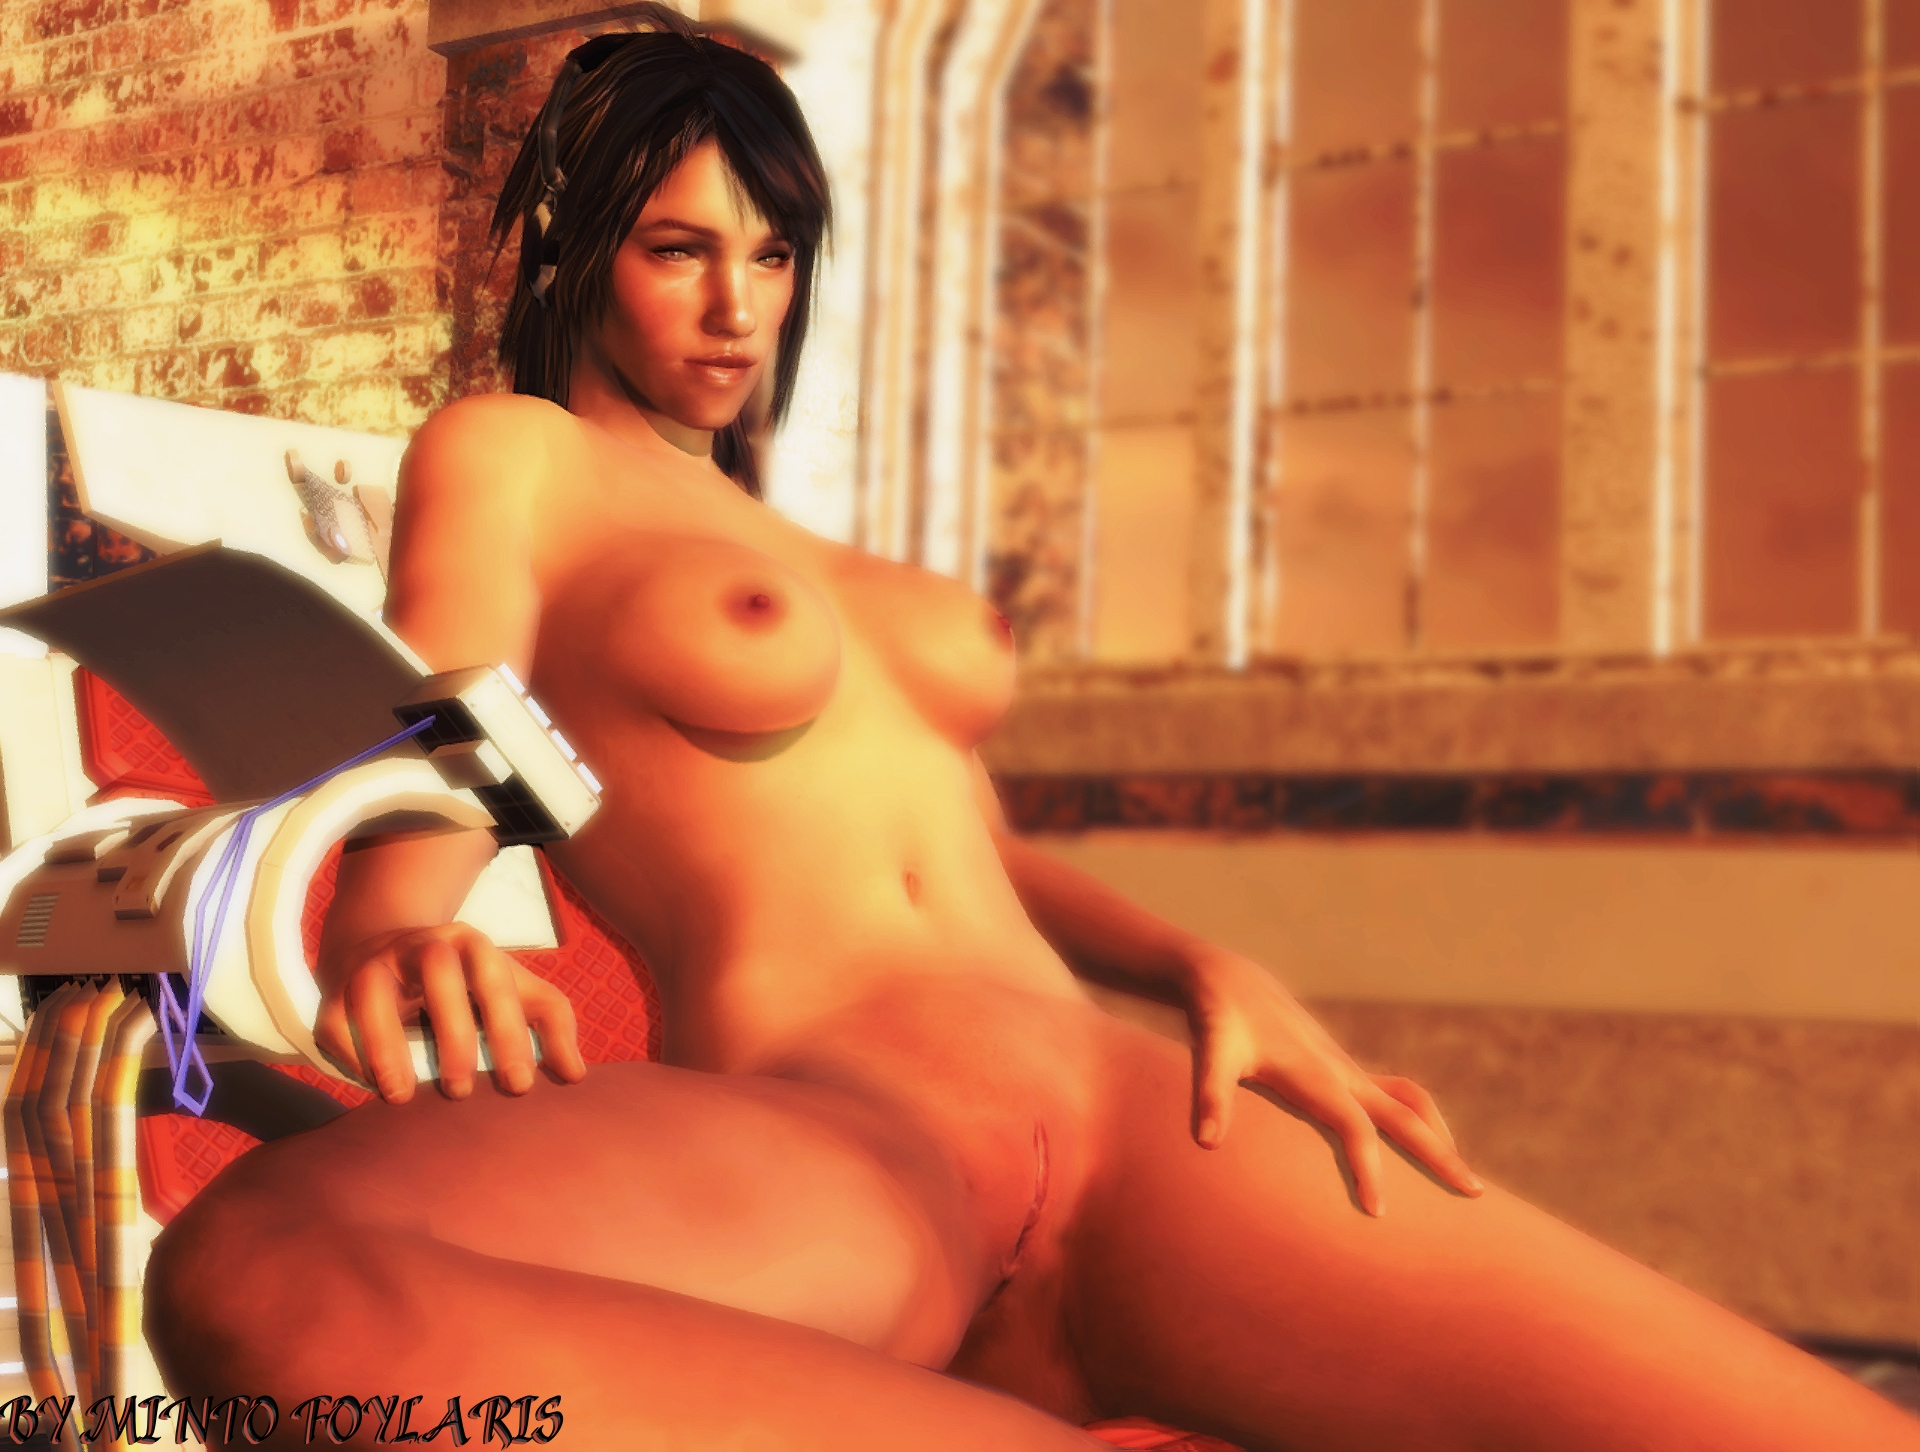 Female assassin creed porn nackt galleries